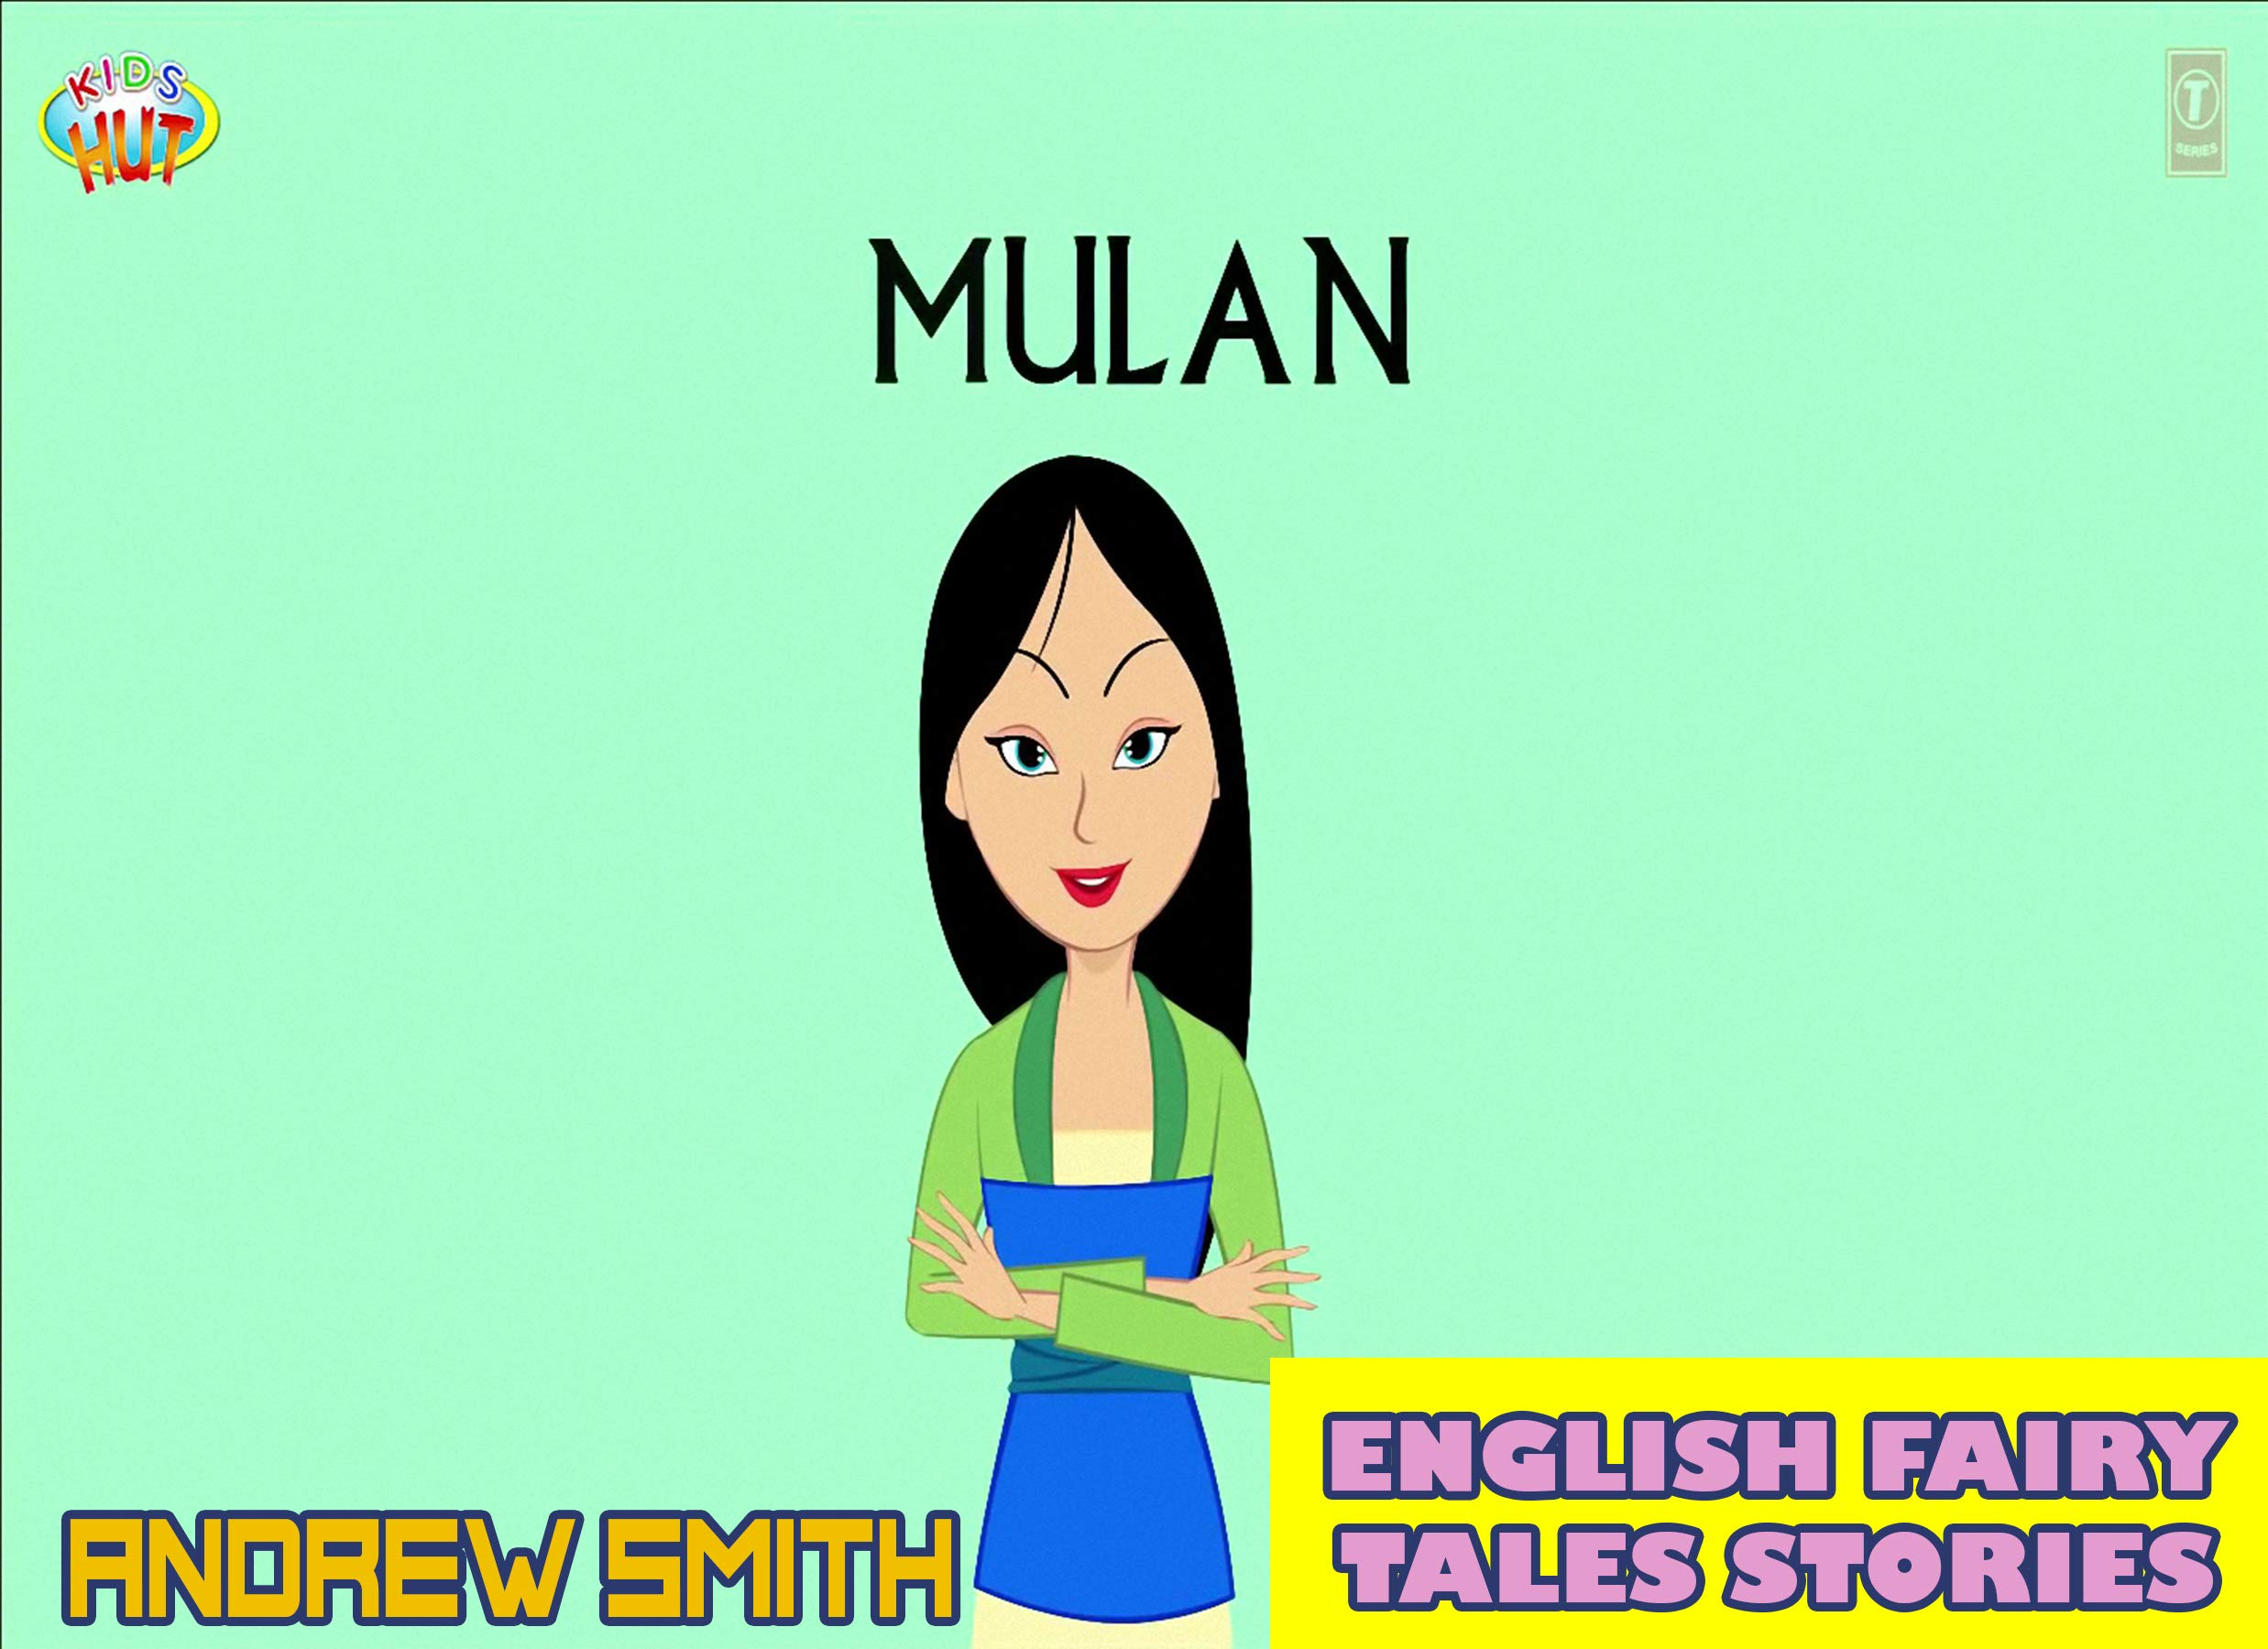 English Fairy Tales Stories: Mulan - Great 5-Minute Fairy Tale Picture Book For Kids, Boys, Girls, Children Of All Age